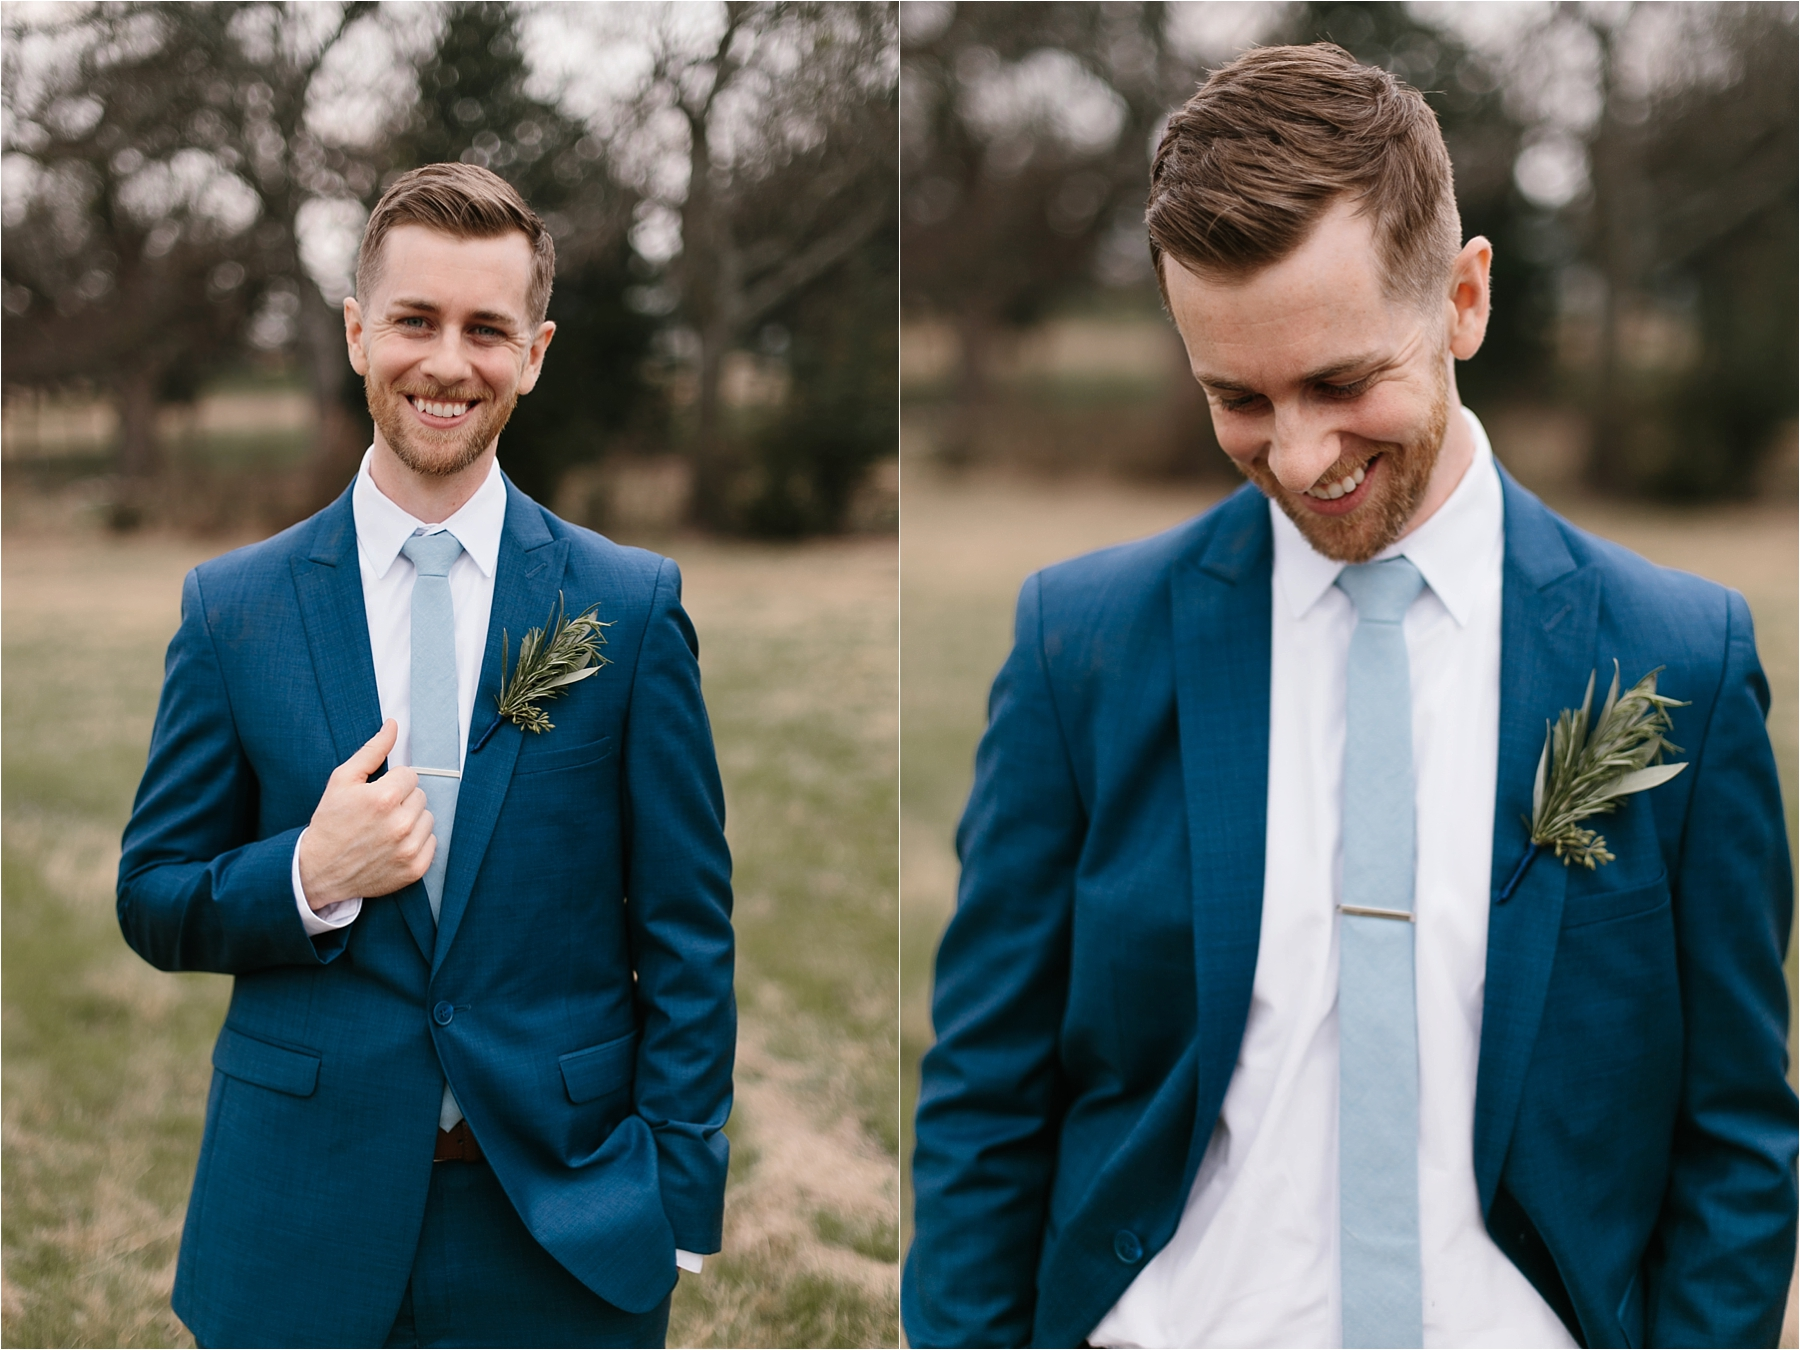 Lauren + Matt __ an intimate, emotional, blush pink, navy blue, and greenery toned wedding accents at the Brooks at Weatherford by North Texas Wedding Photographer Rachel Meagan Photography075